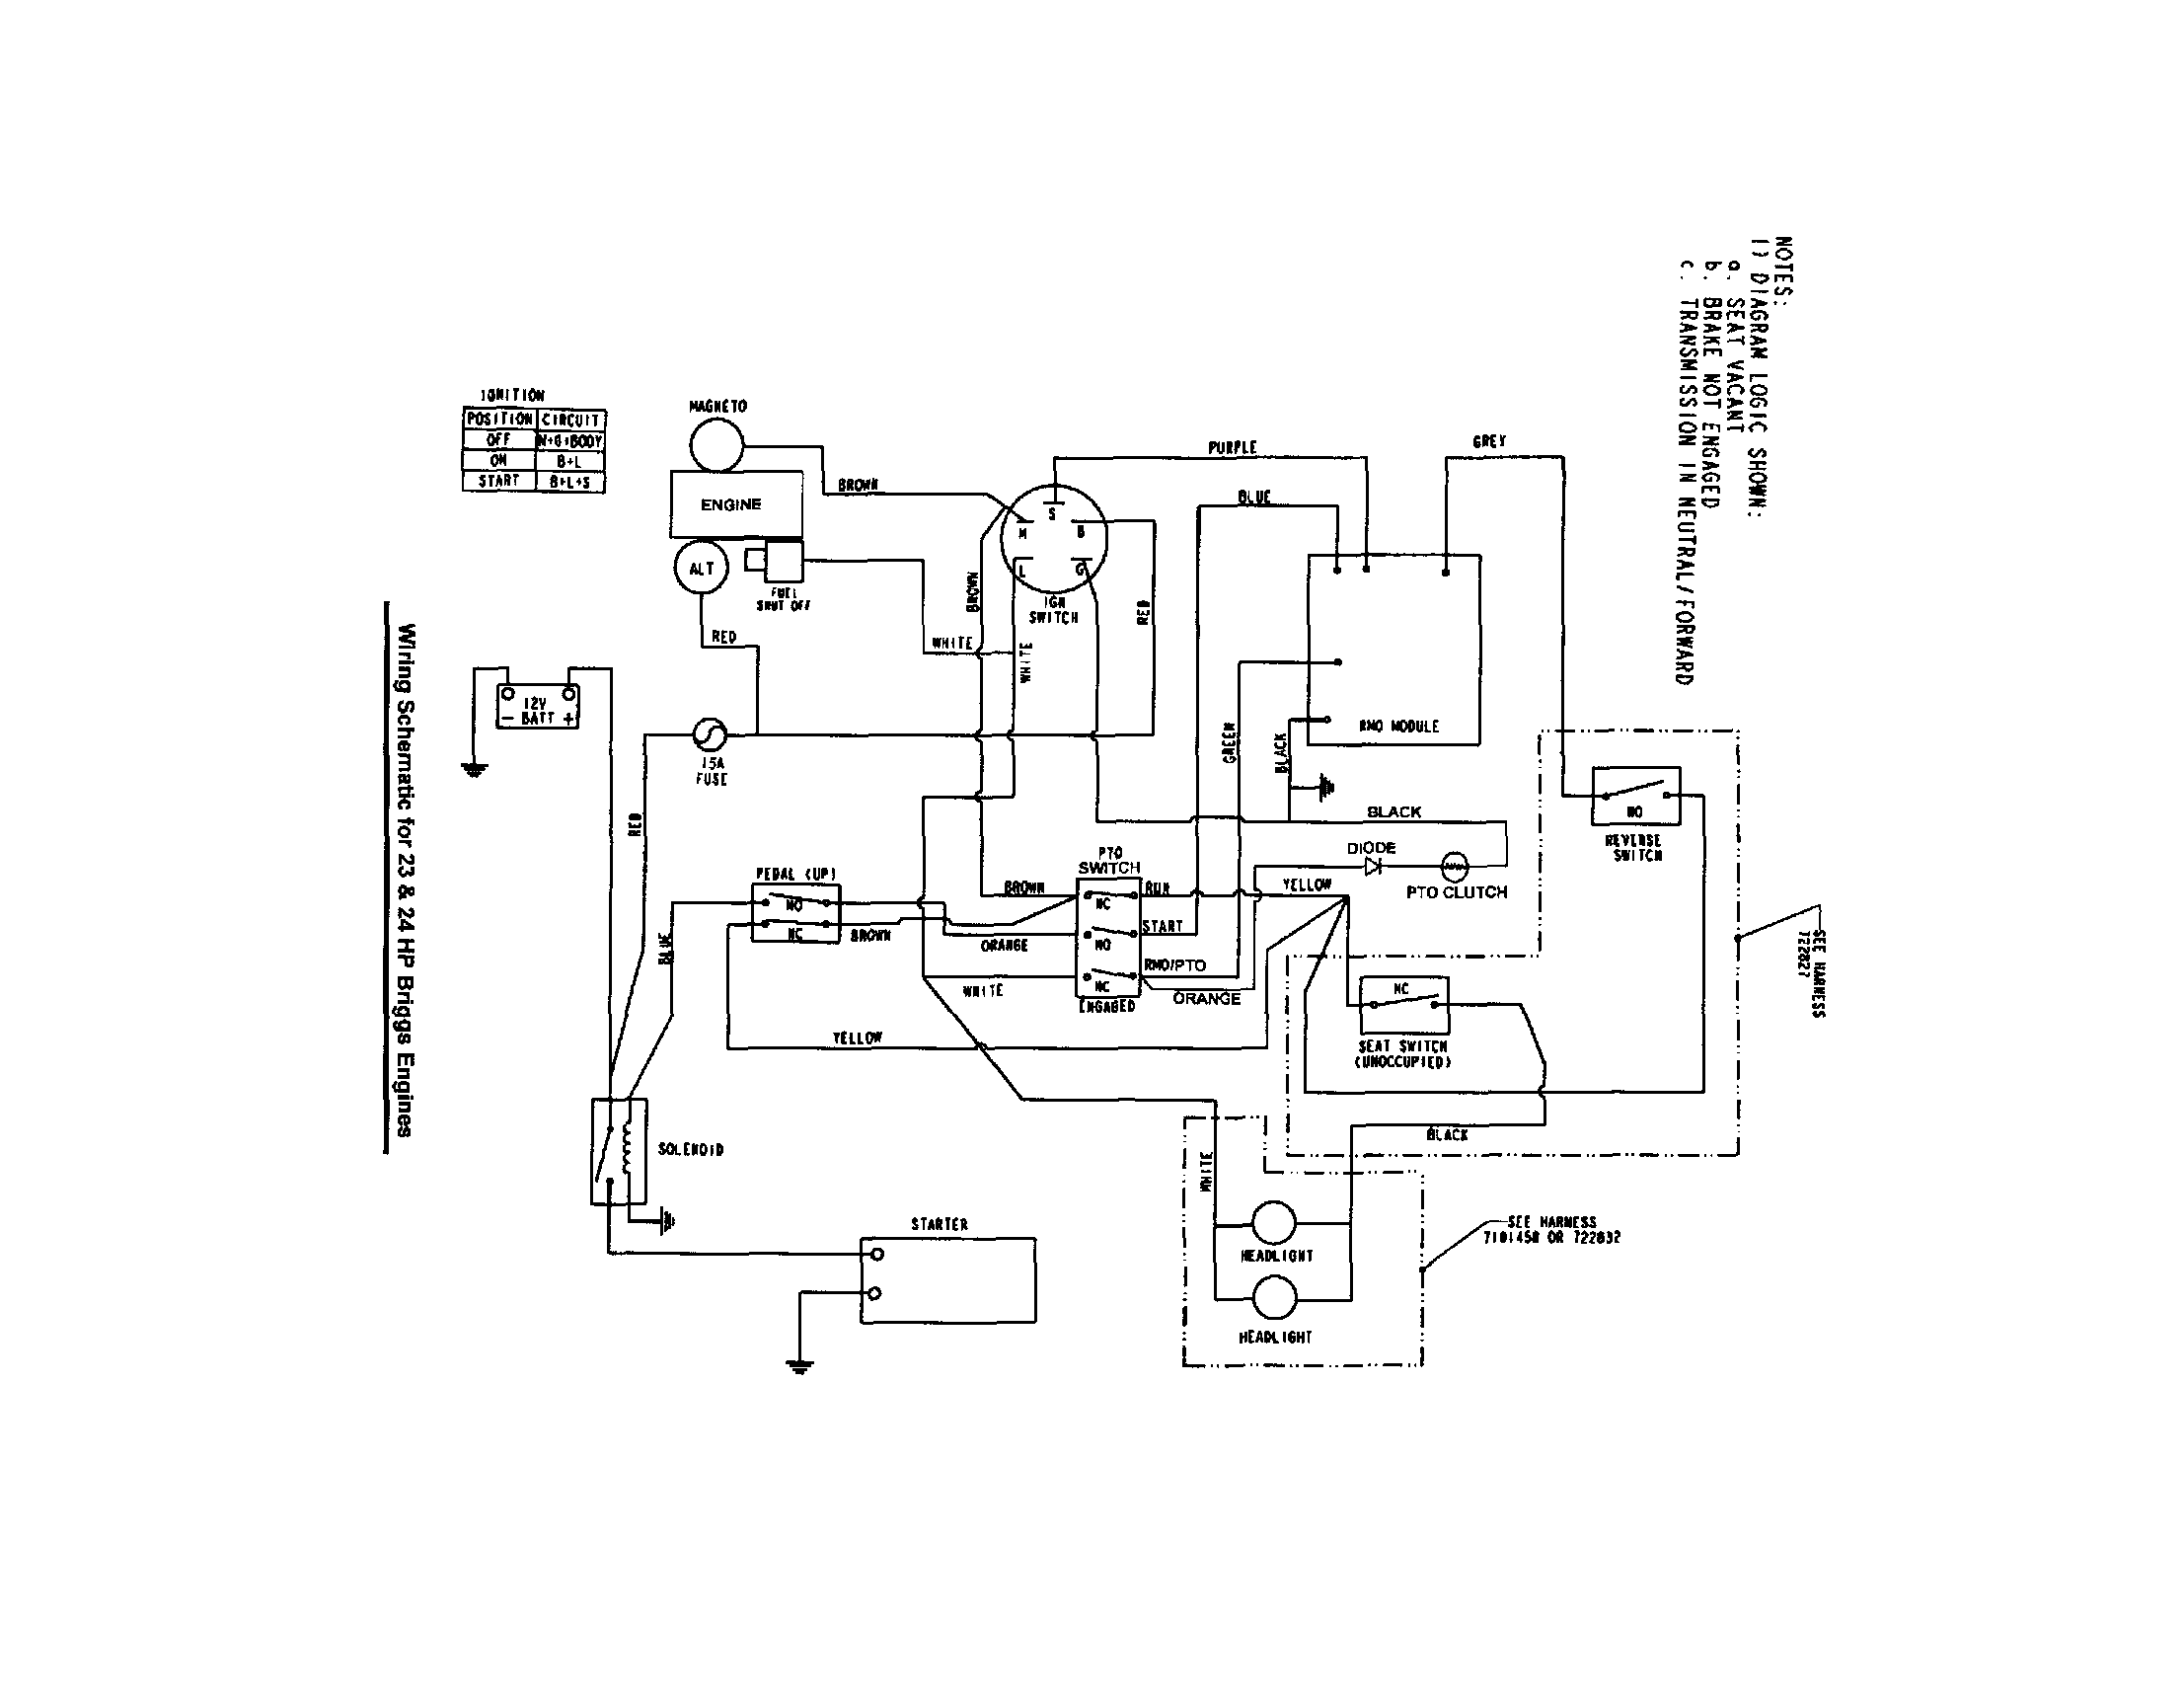 hight resolution of 60658 snapper wiring harness wiring diagrams show 60658 snapper wiring harness